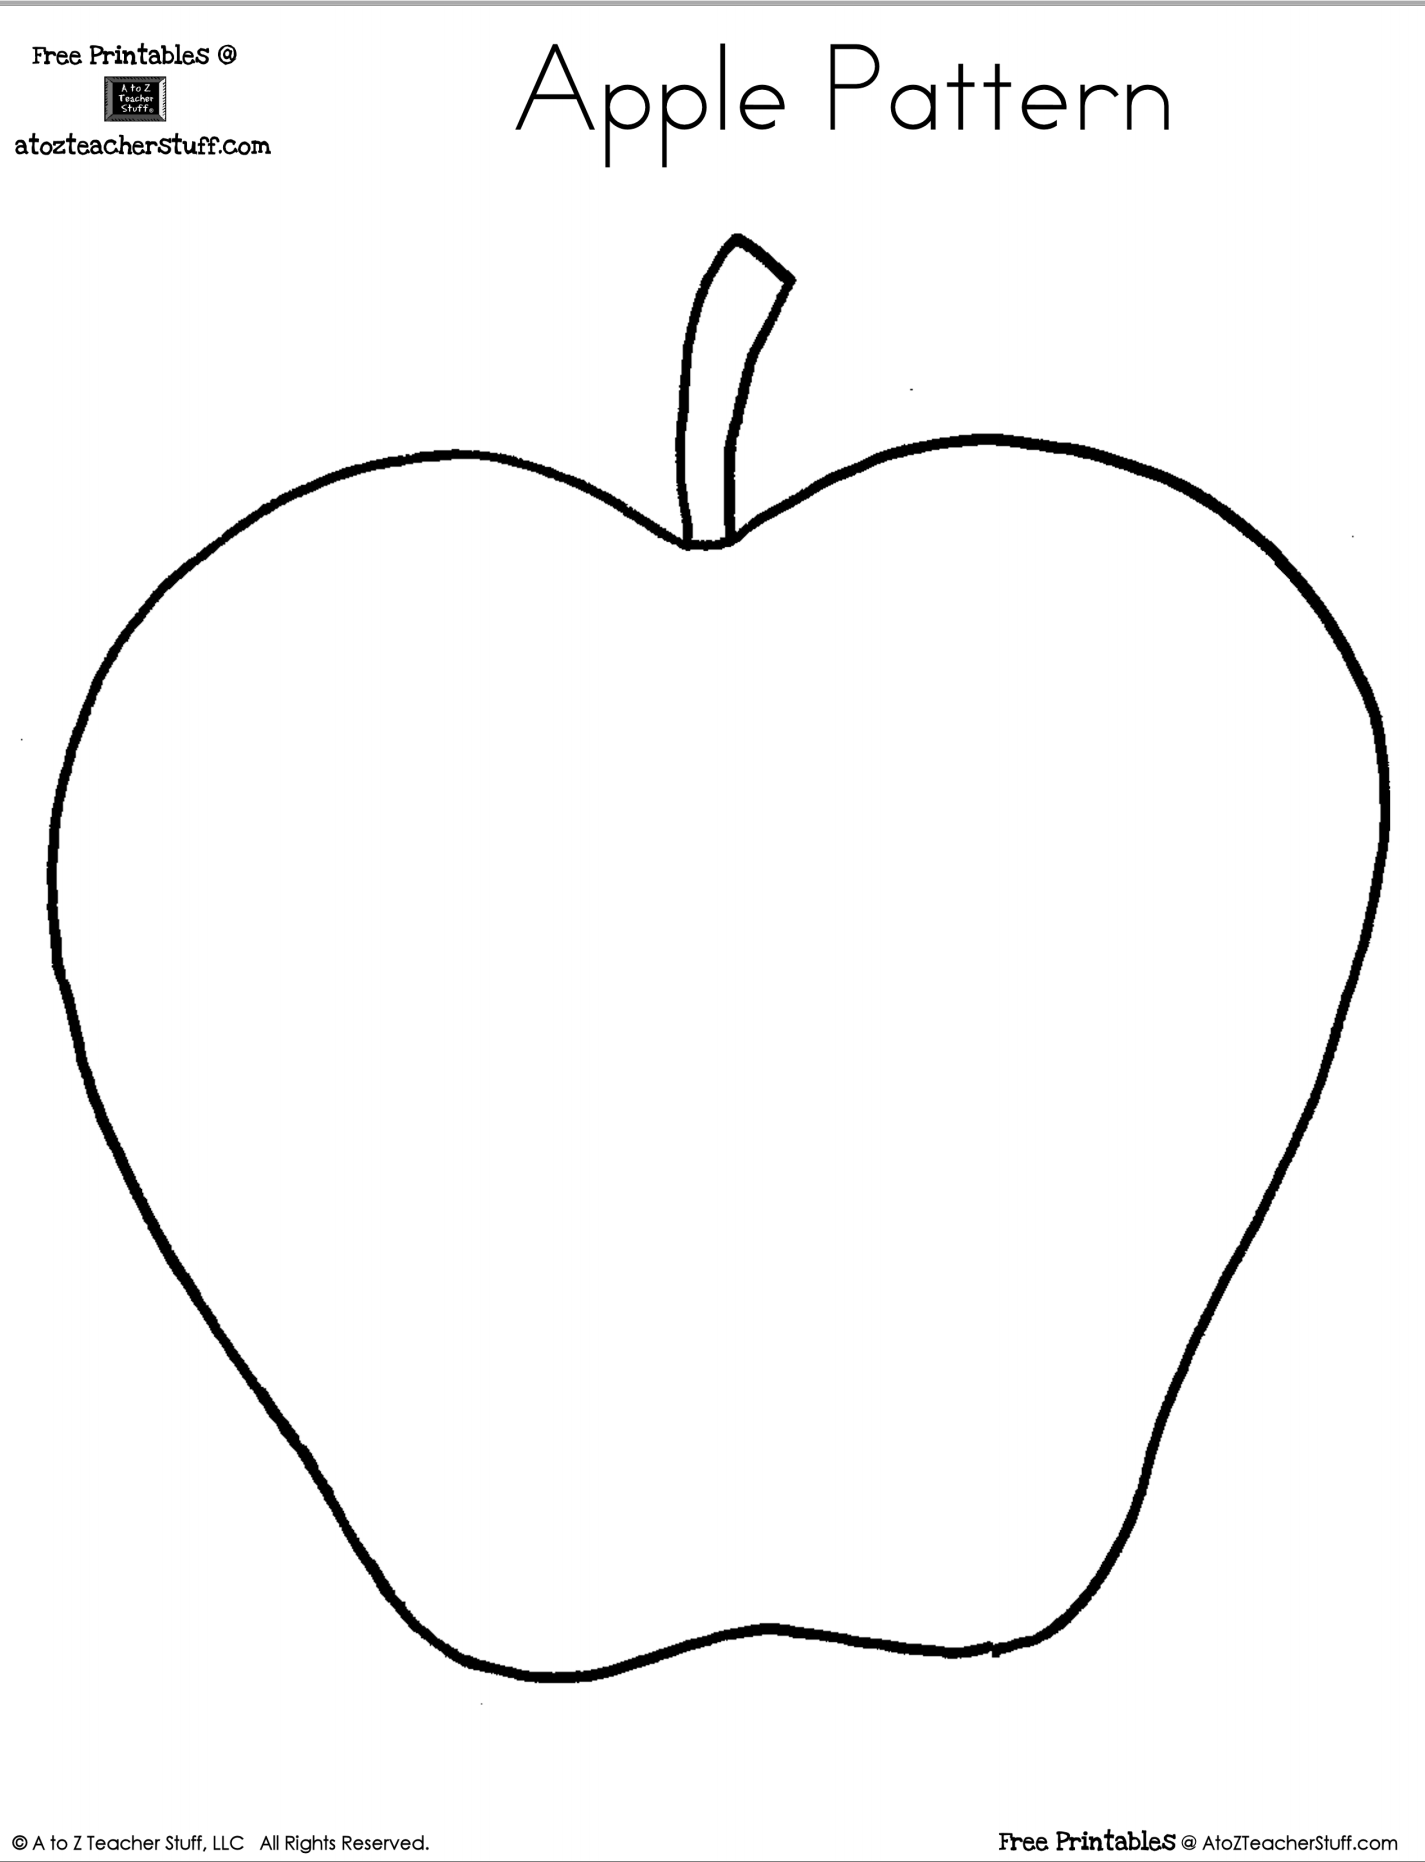 Apple Themed Coloring Pages : Printable apple pattern a to z teacher stuff